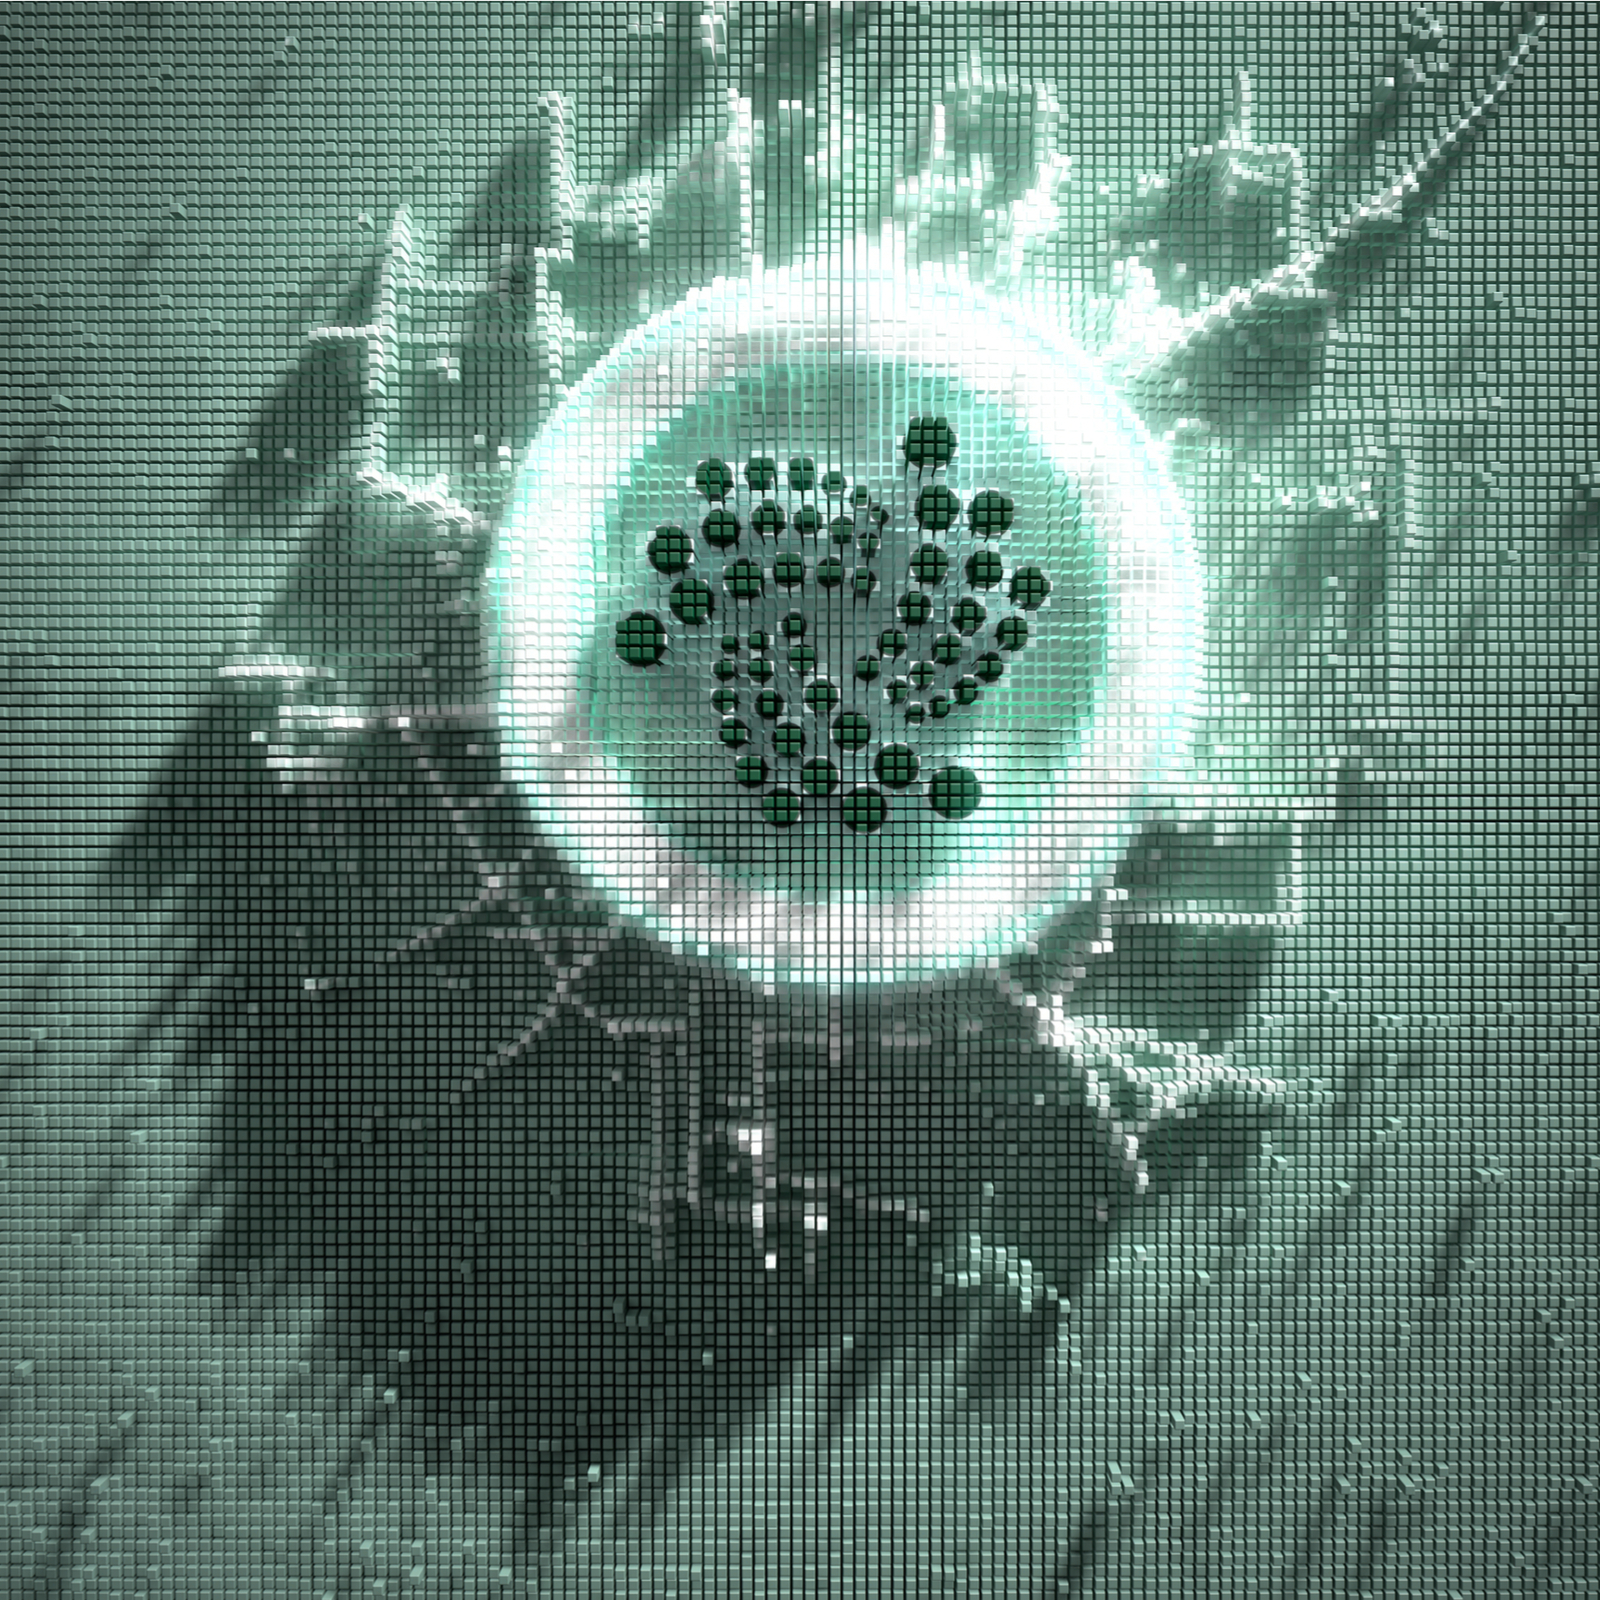 """Analyst: IOTA Sharply Overvalued Due to """"Overwhelming Evidence of Serious Flaws"""""""